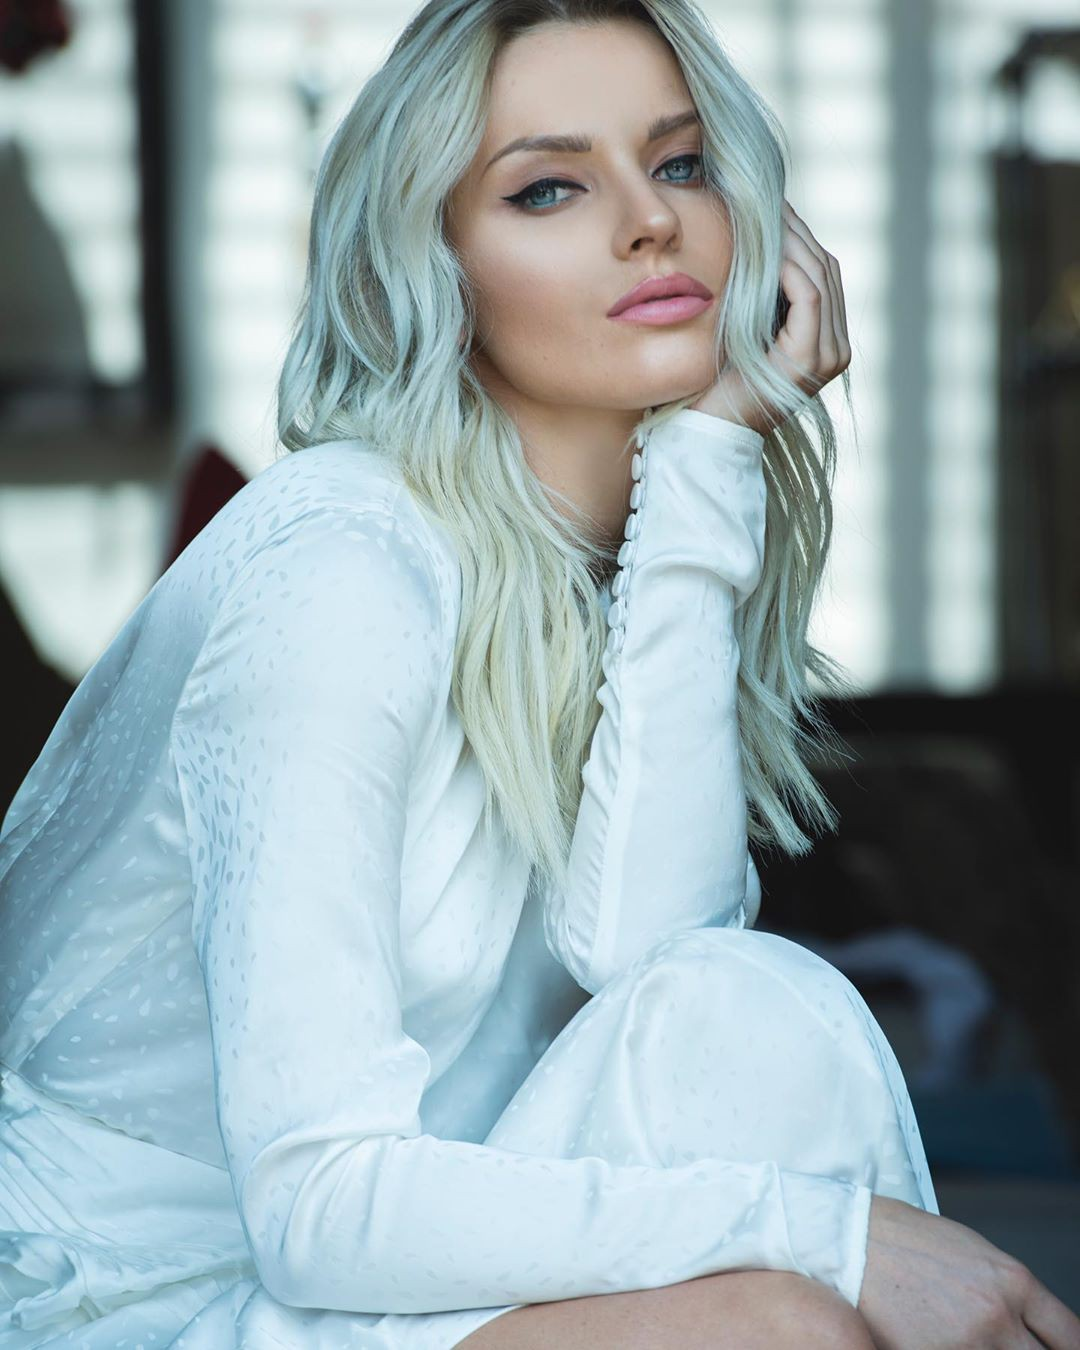 Irina Baeva blond hairstyle, Face Makeup, Girls Lips